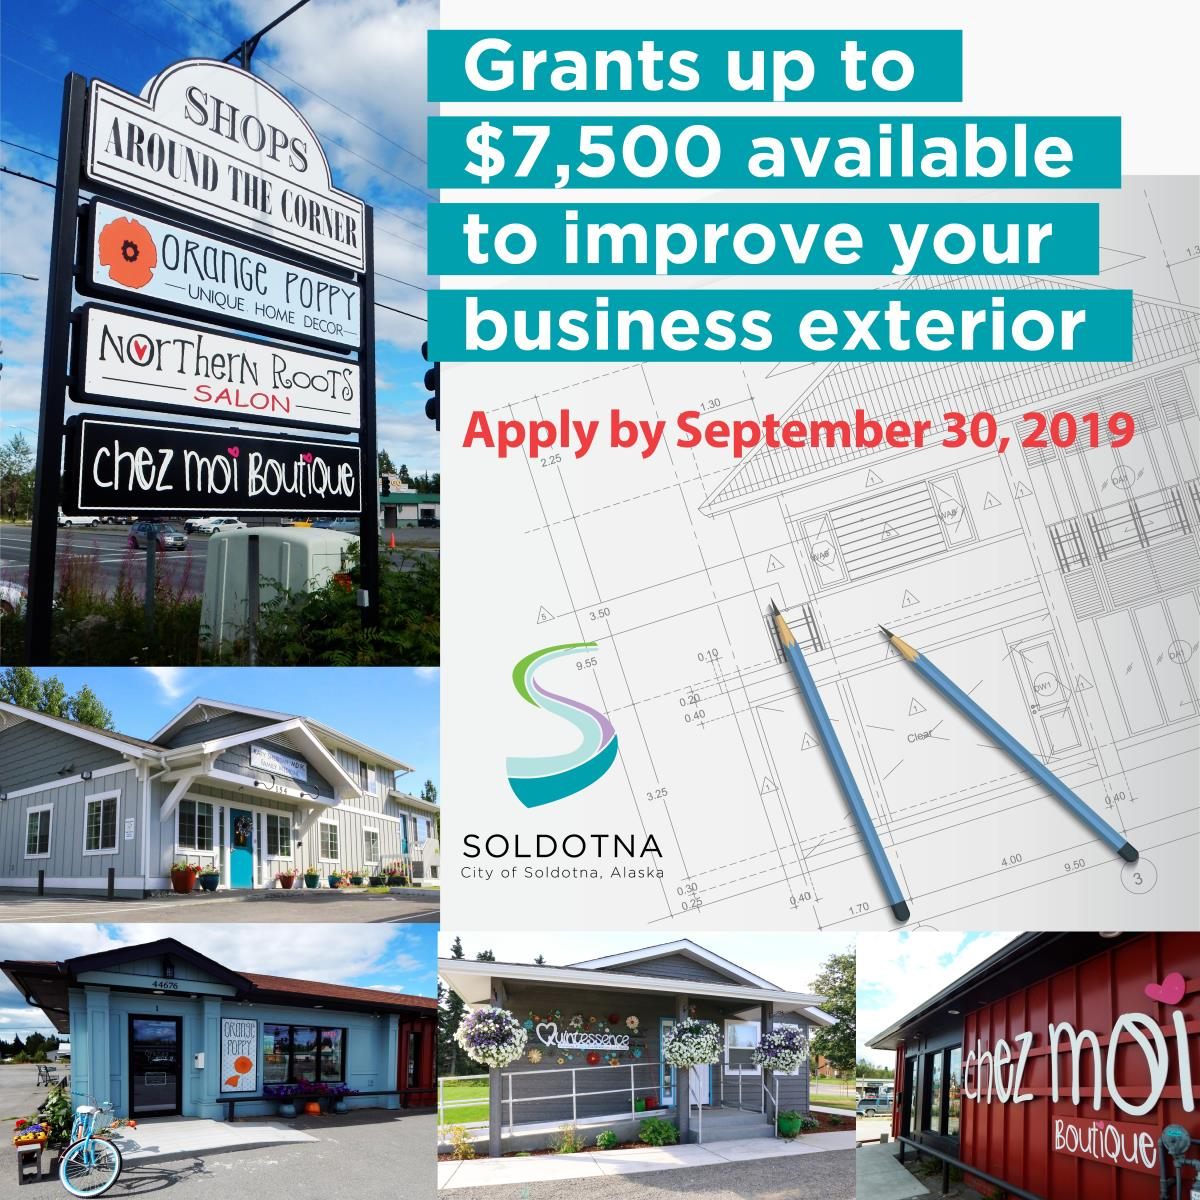 Storefront Improvement Program is Now Accepting Applications